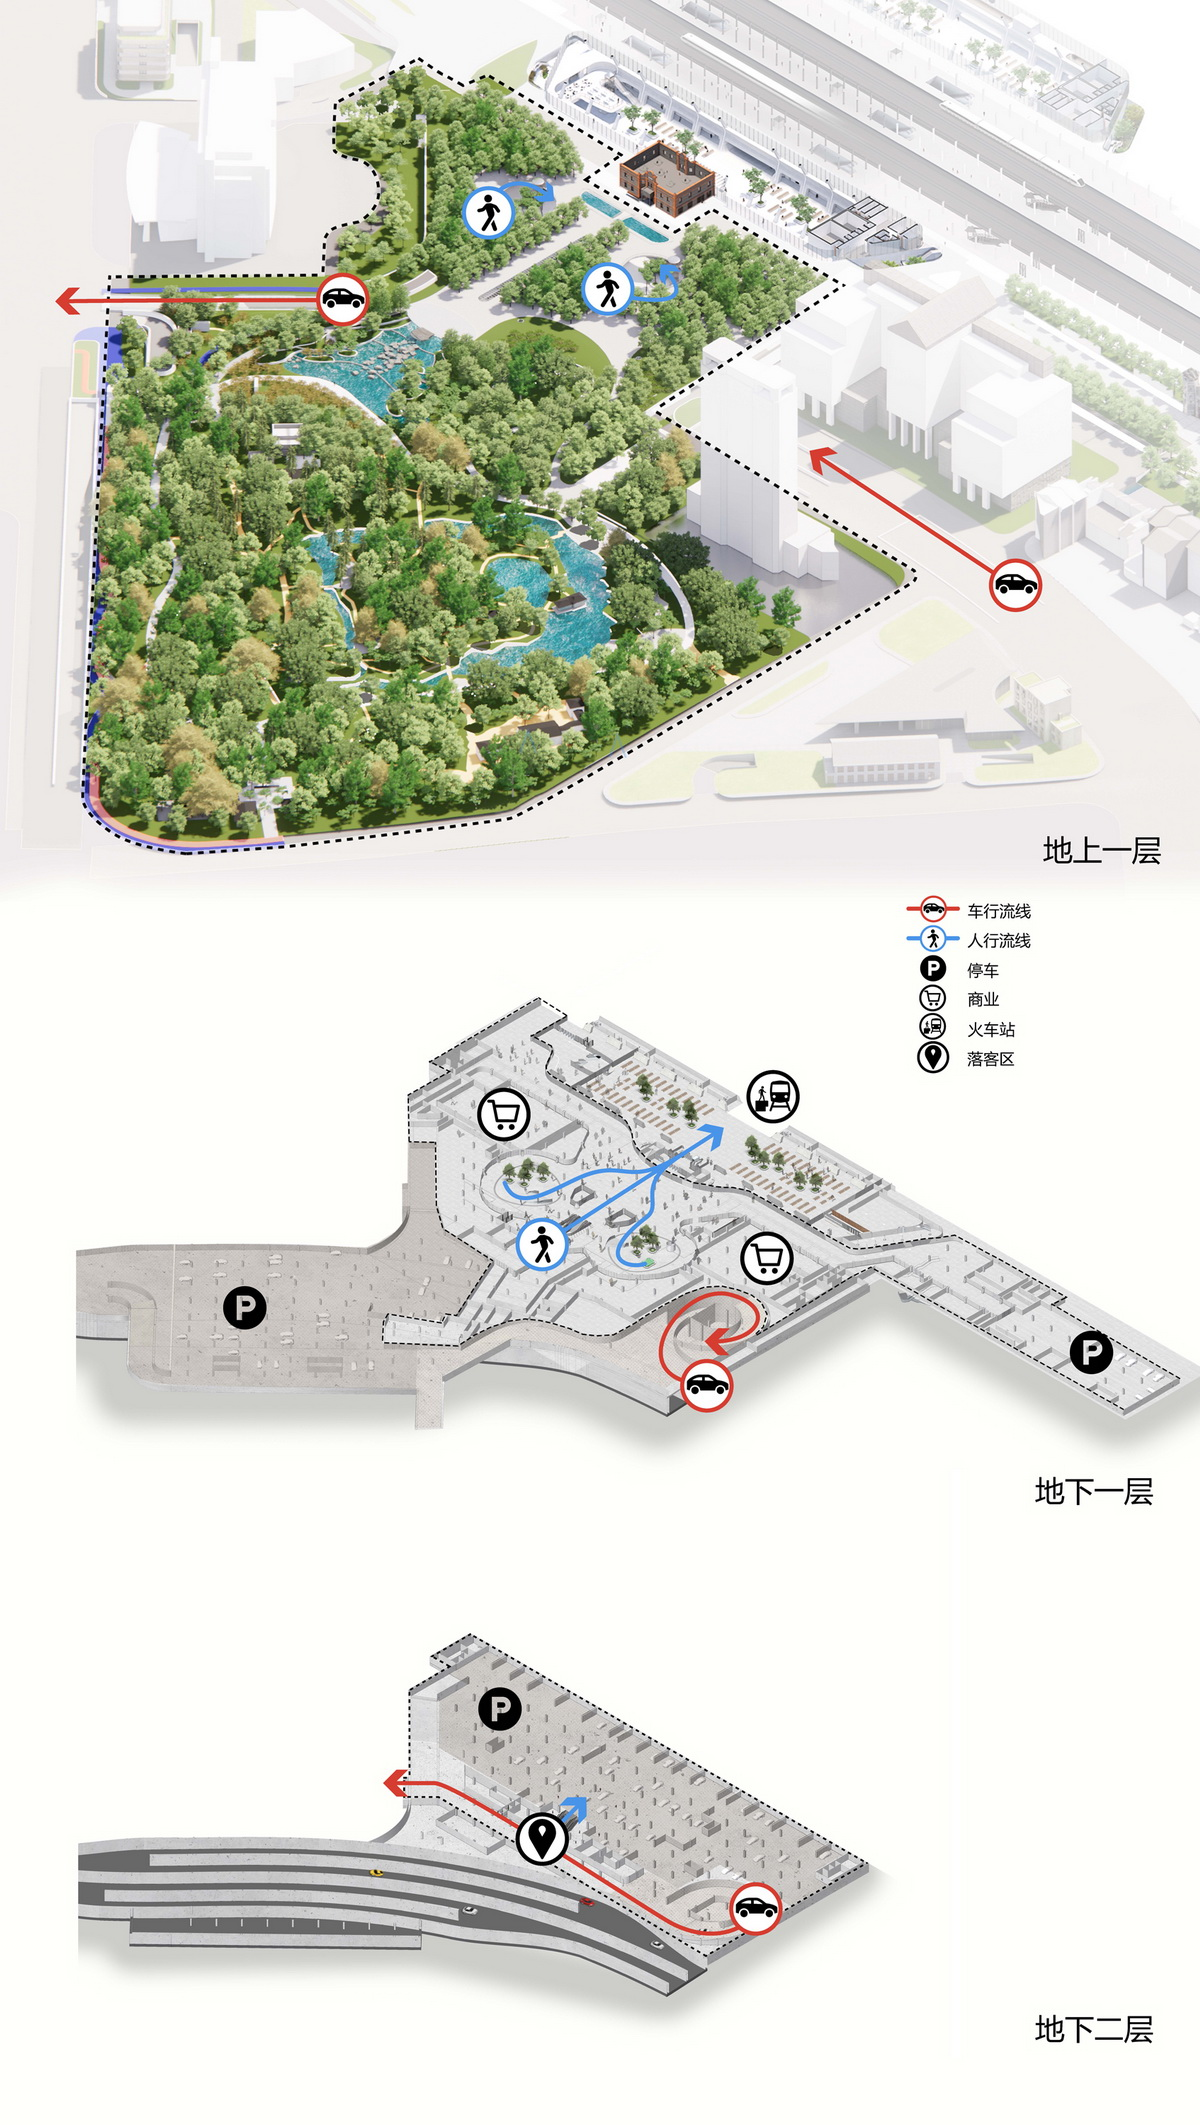 31_MAD_Jiaxing Train Station_Axonometric Diagram_cn_调整大小.jpg